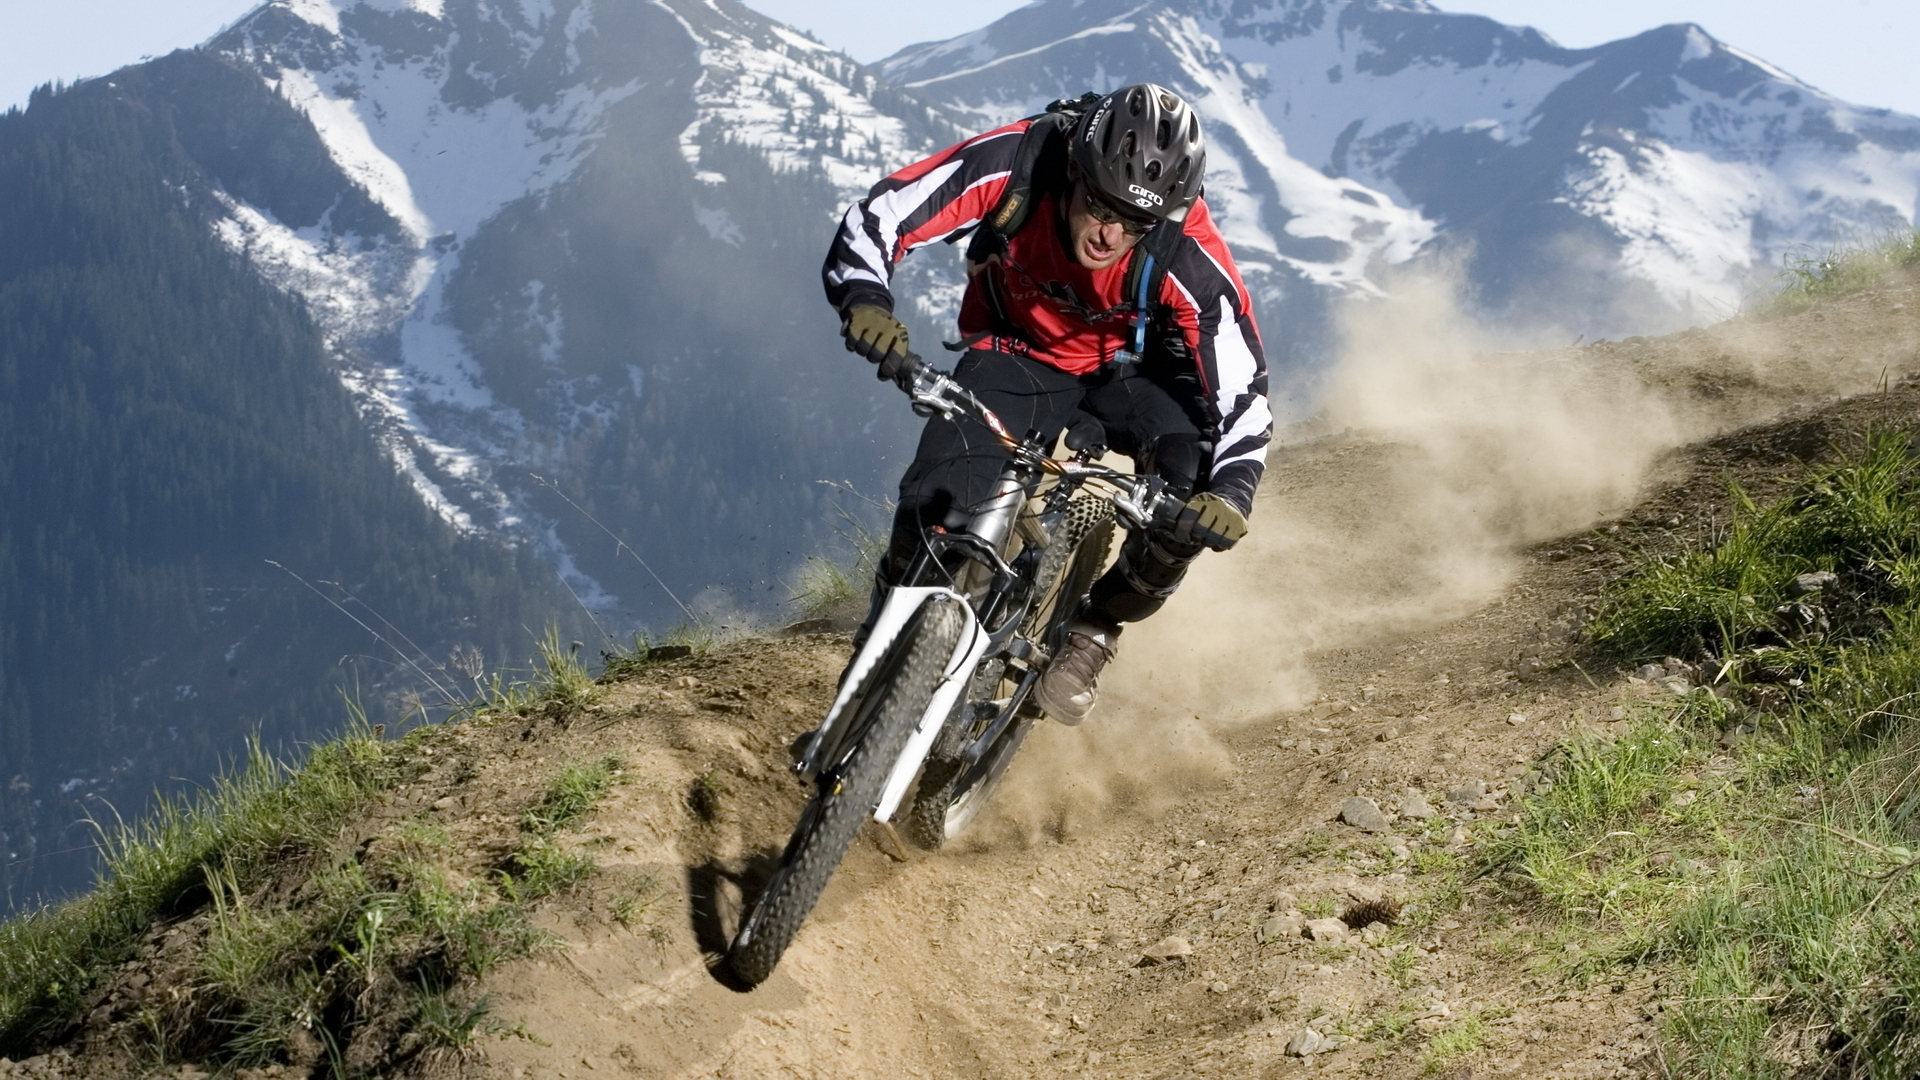 For fellow adrenaline junkies, mountain biking is a fantastic way to get your fix of crazy, nearly-death-defying action. Compared to other adrenaline ...